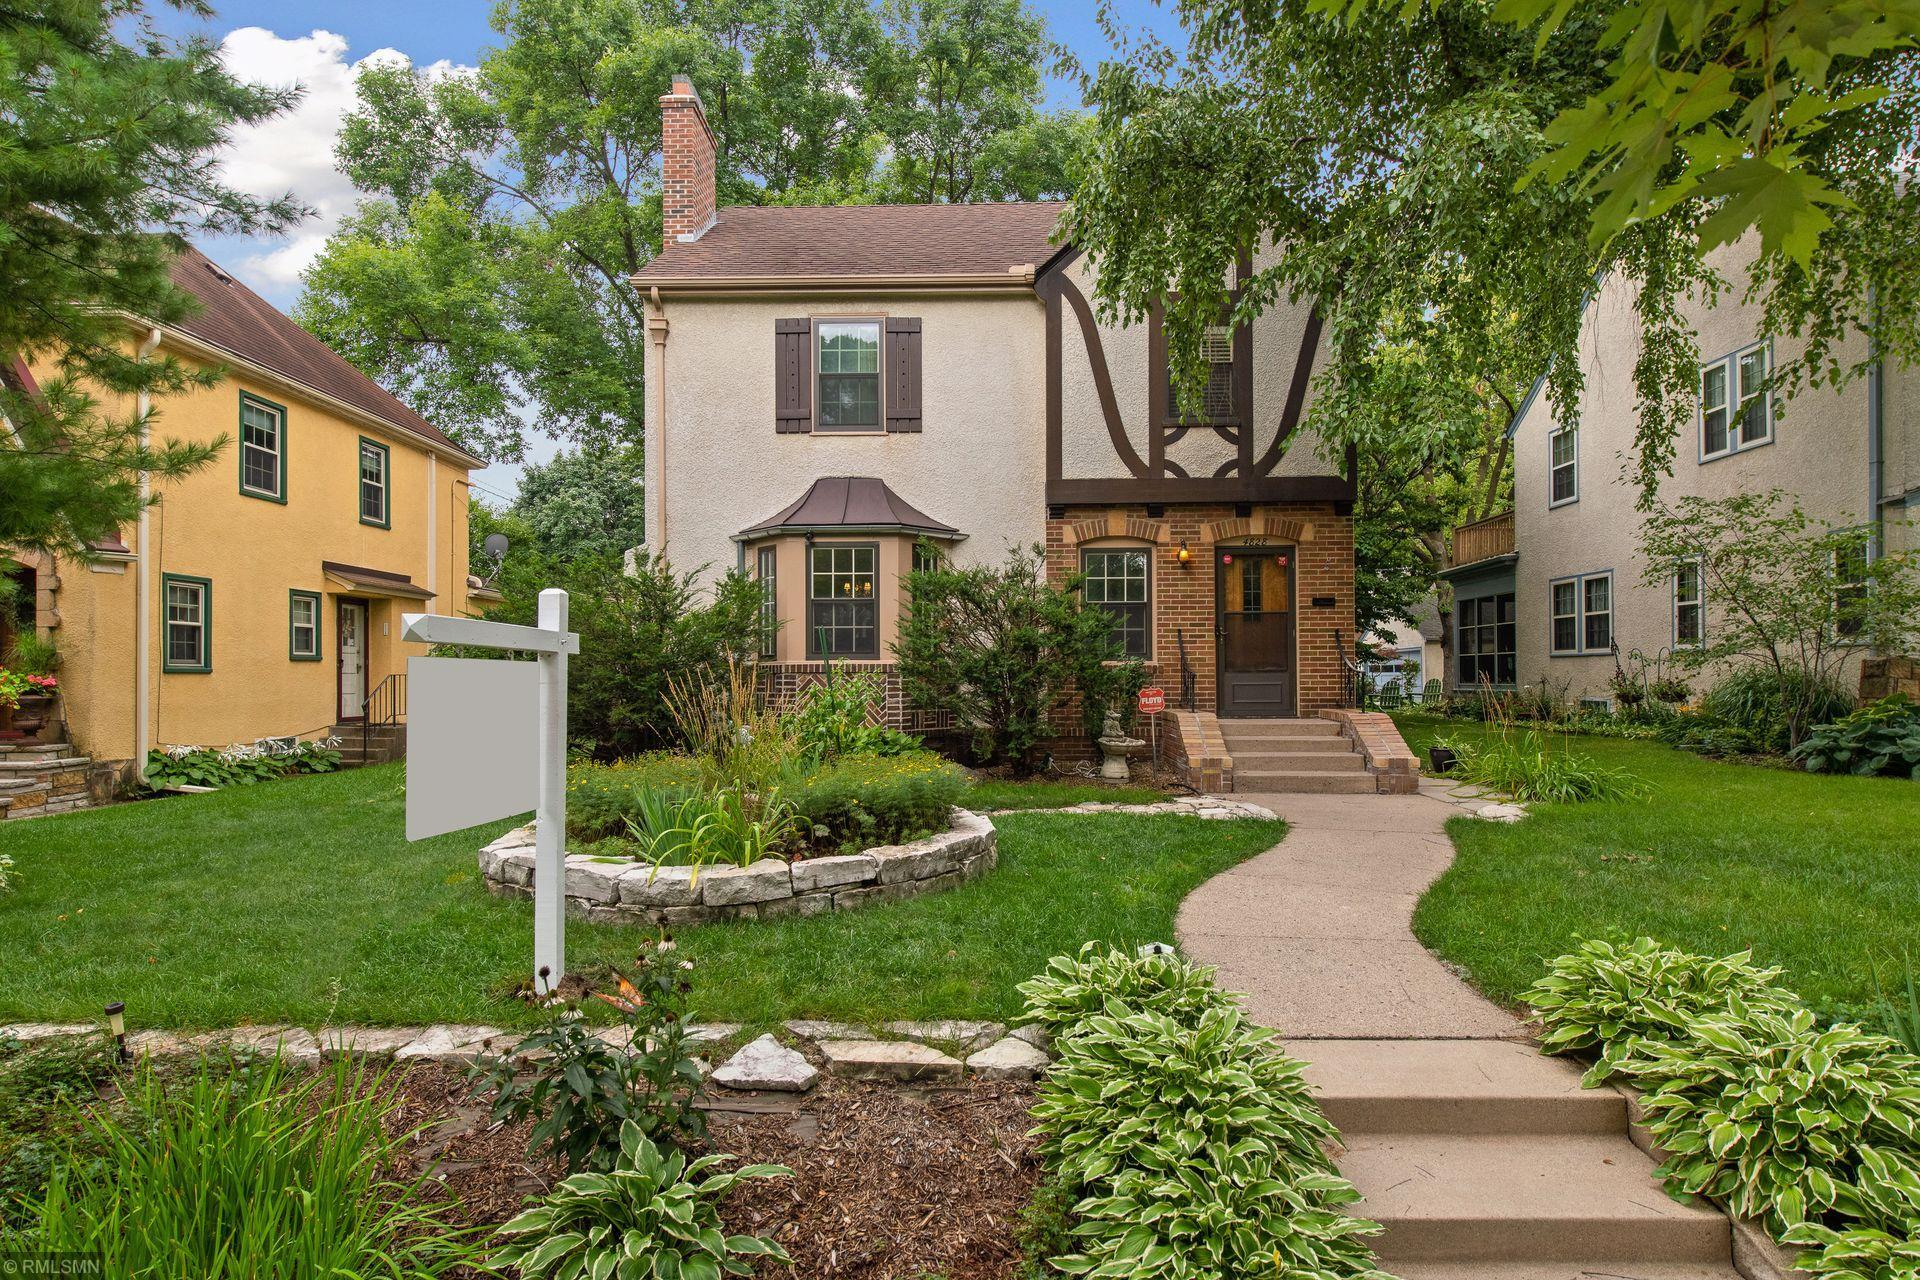 4828 11th Avenue S Property Photo - Minneapolis, MN real estate listing